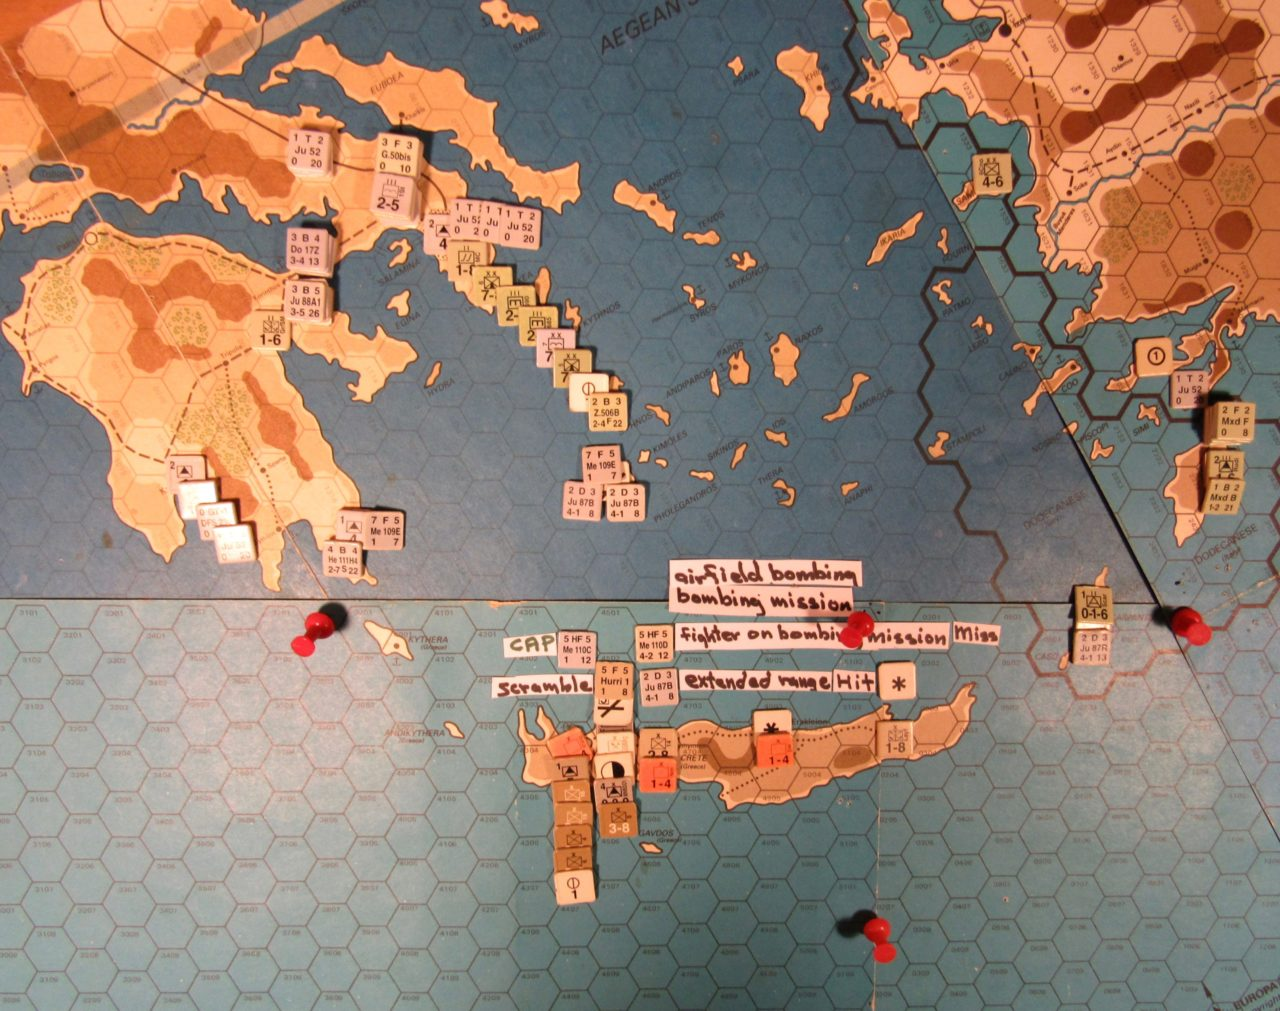 WW 1941 ME/ER-II/Crete Scenario May II 41 Axis beginning of the Movement Phase